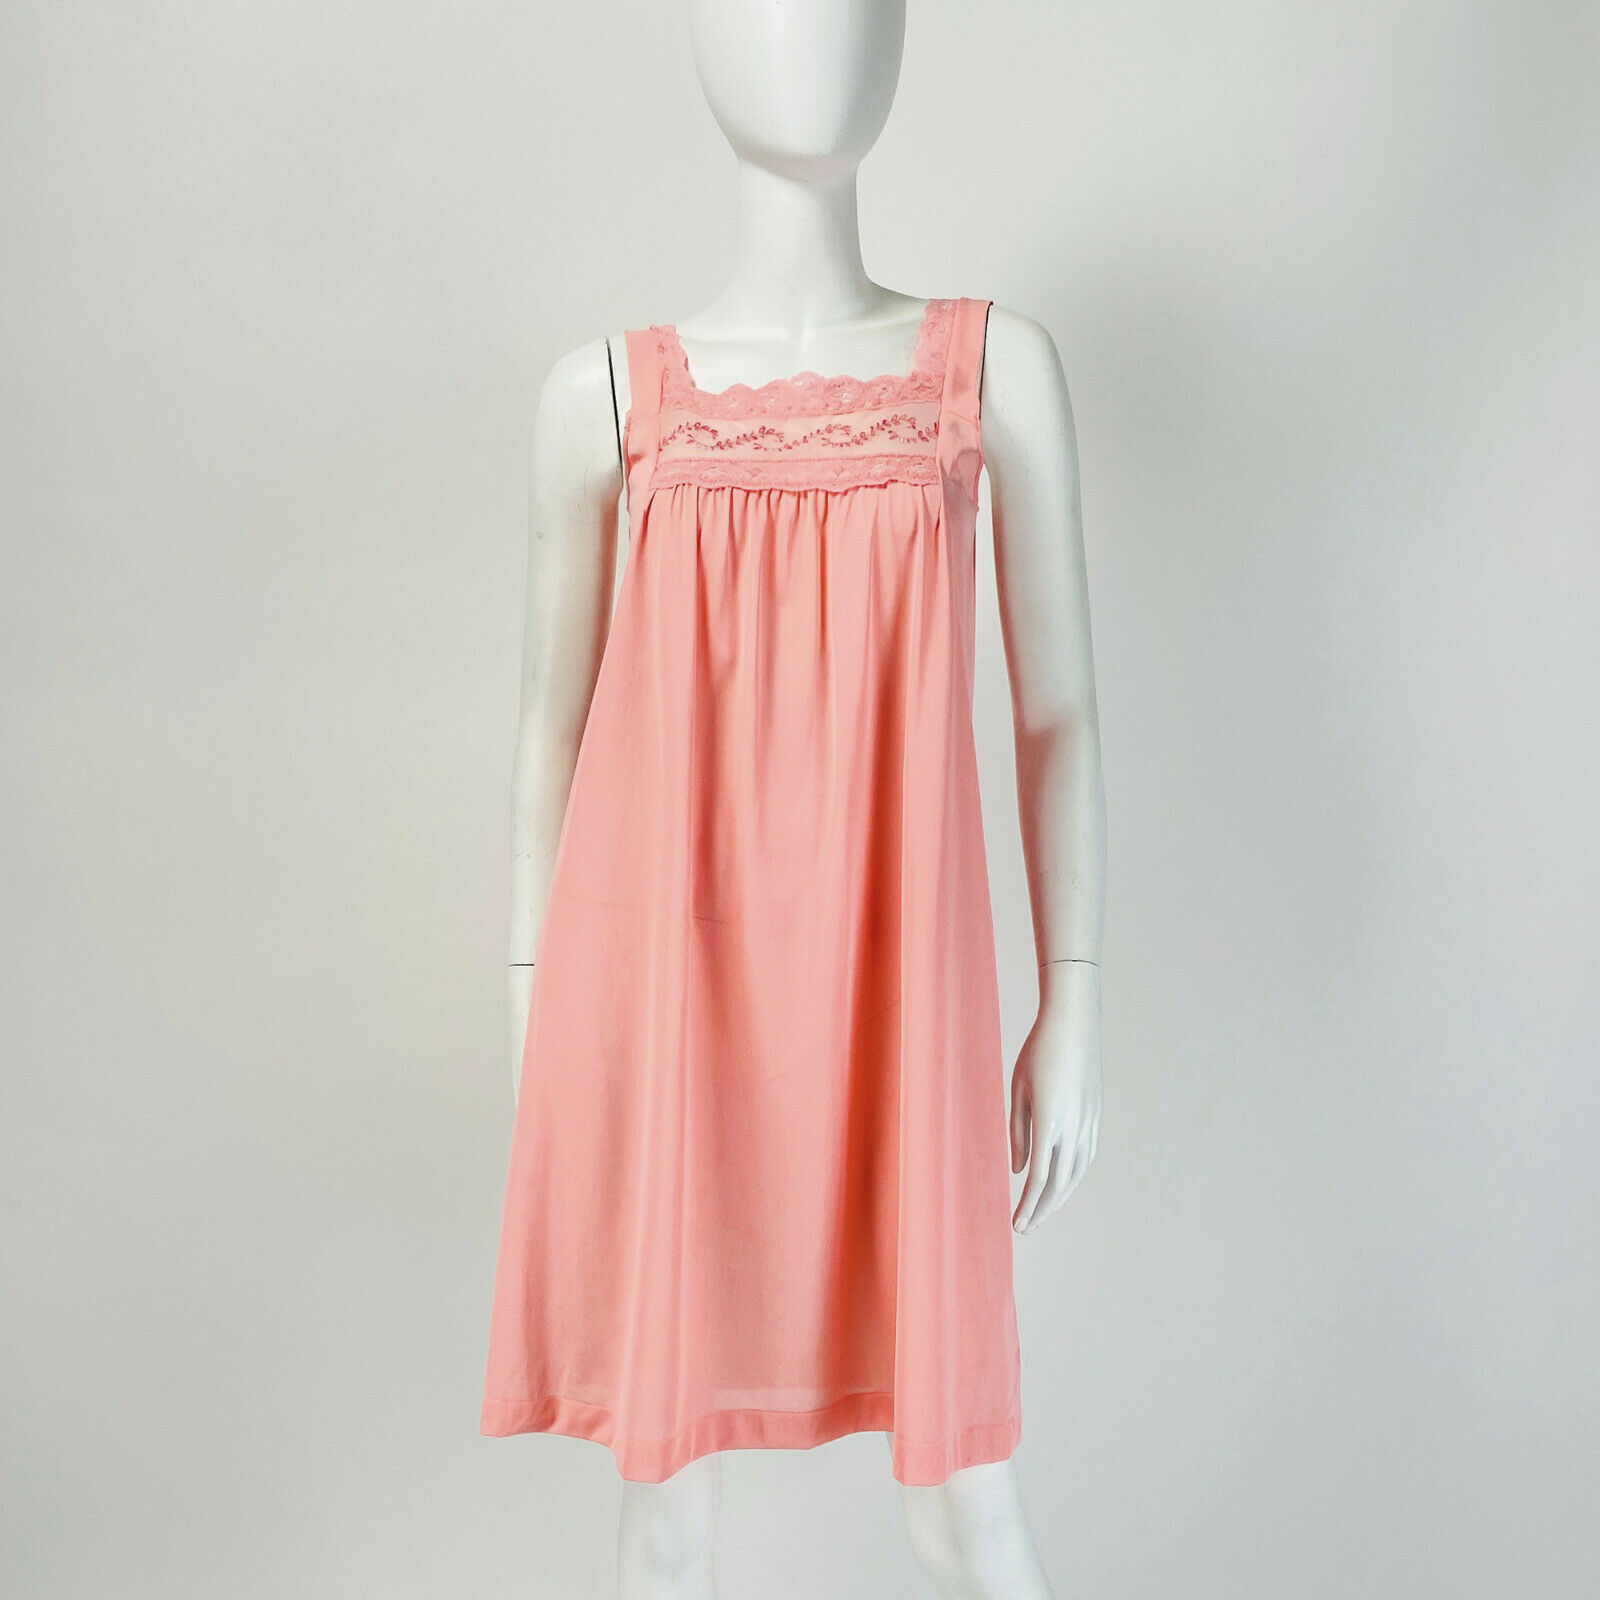 60s70s sheer night gown